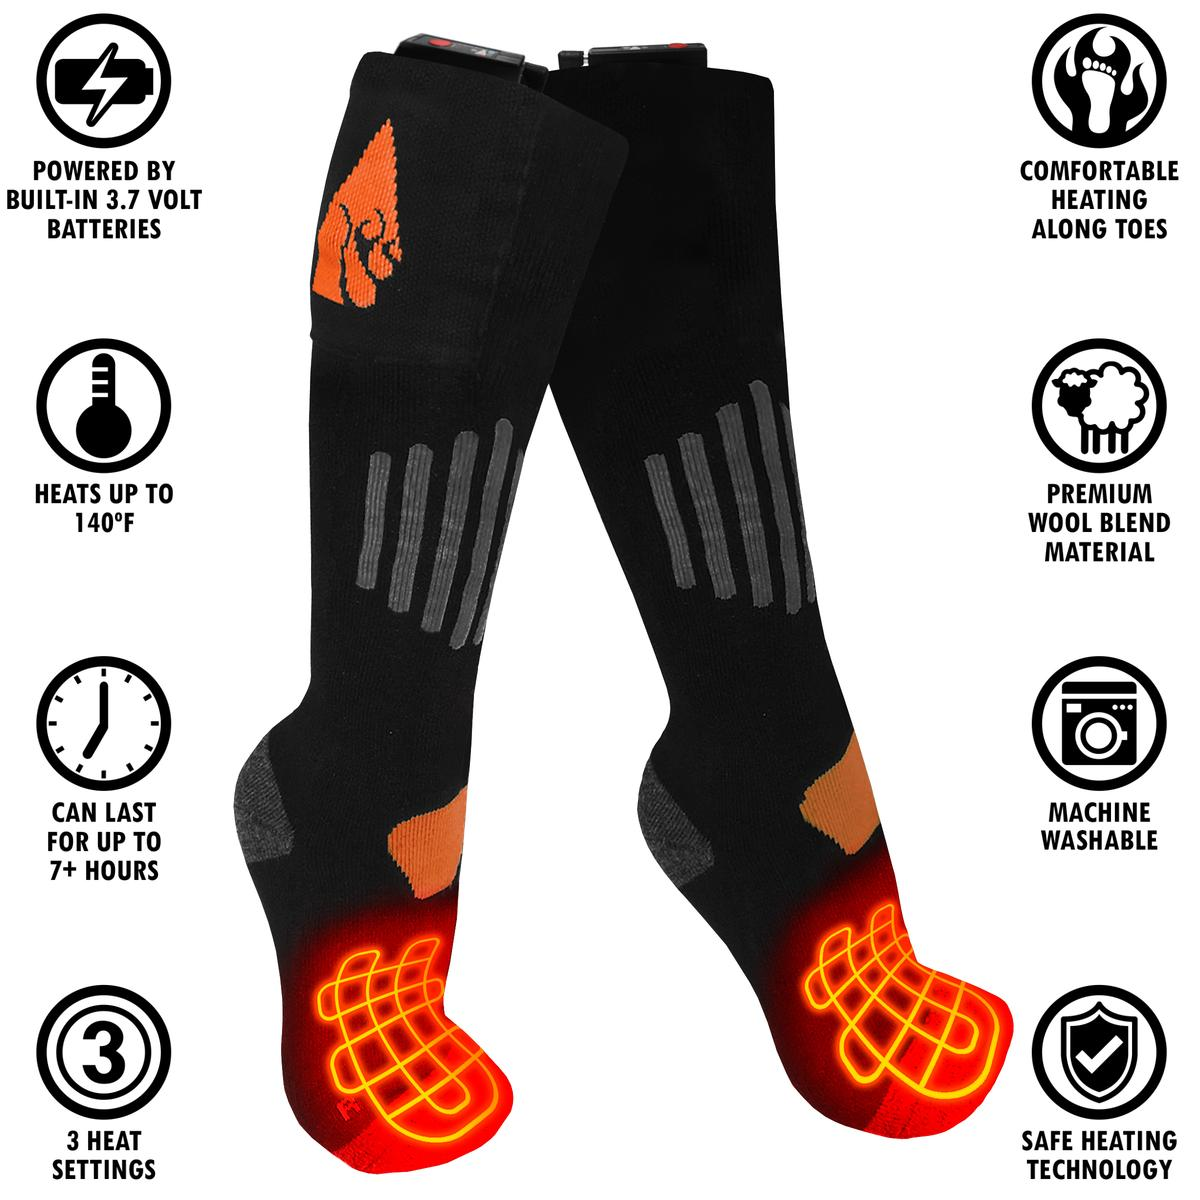 ActionHeat 3.7V Rechargeable Battery Heated Socks - Wool - Info